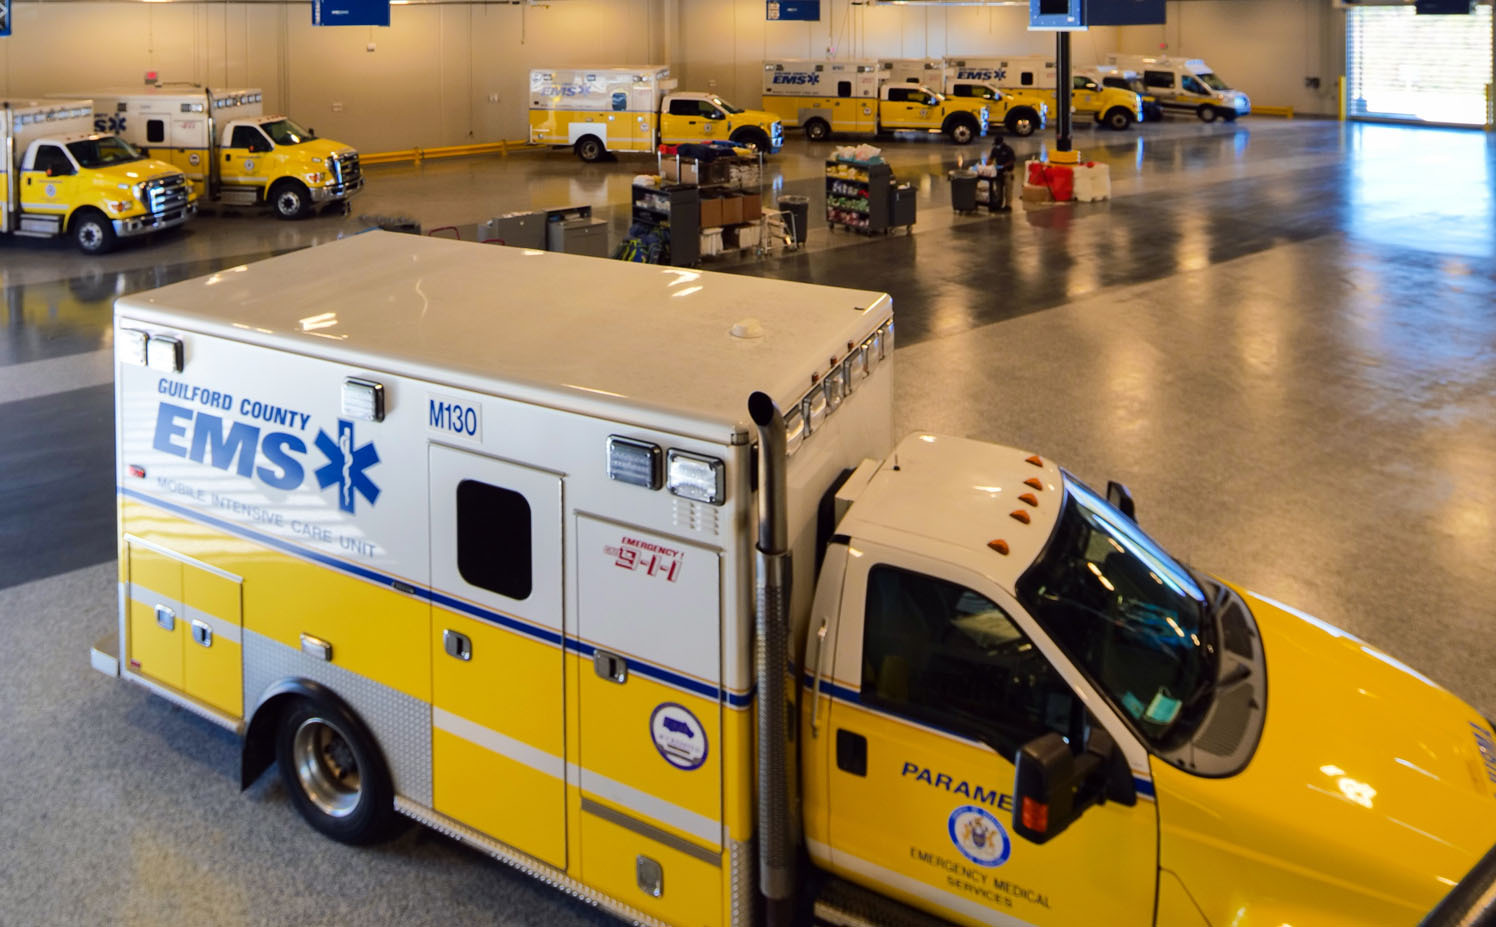 Guilford County Emergency Medical Services